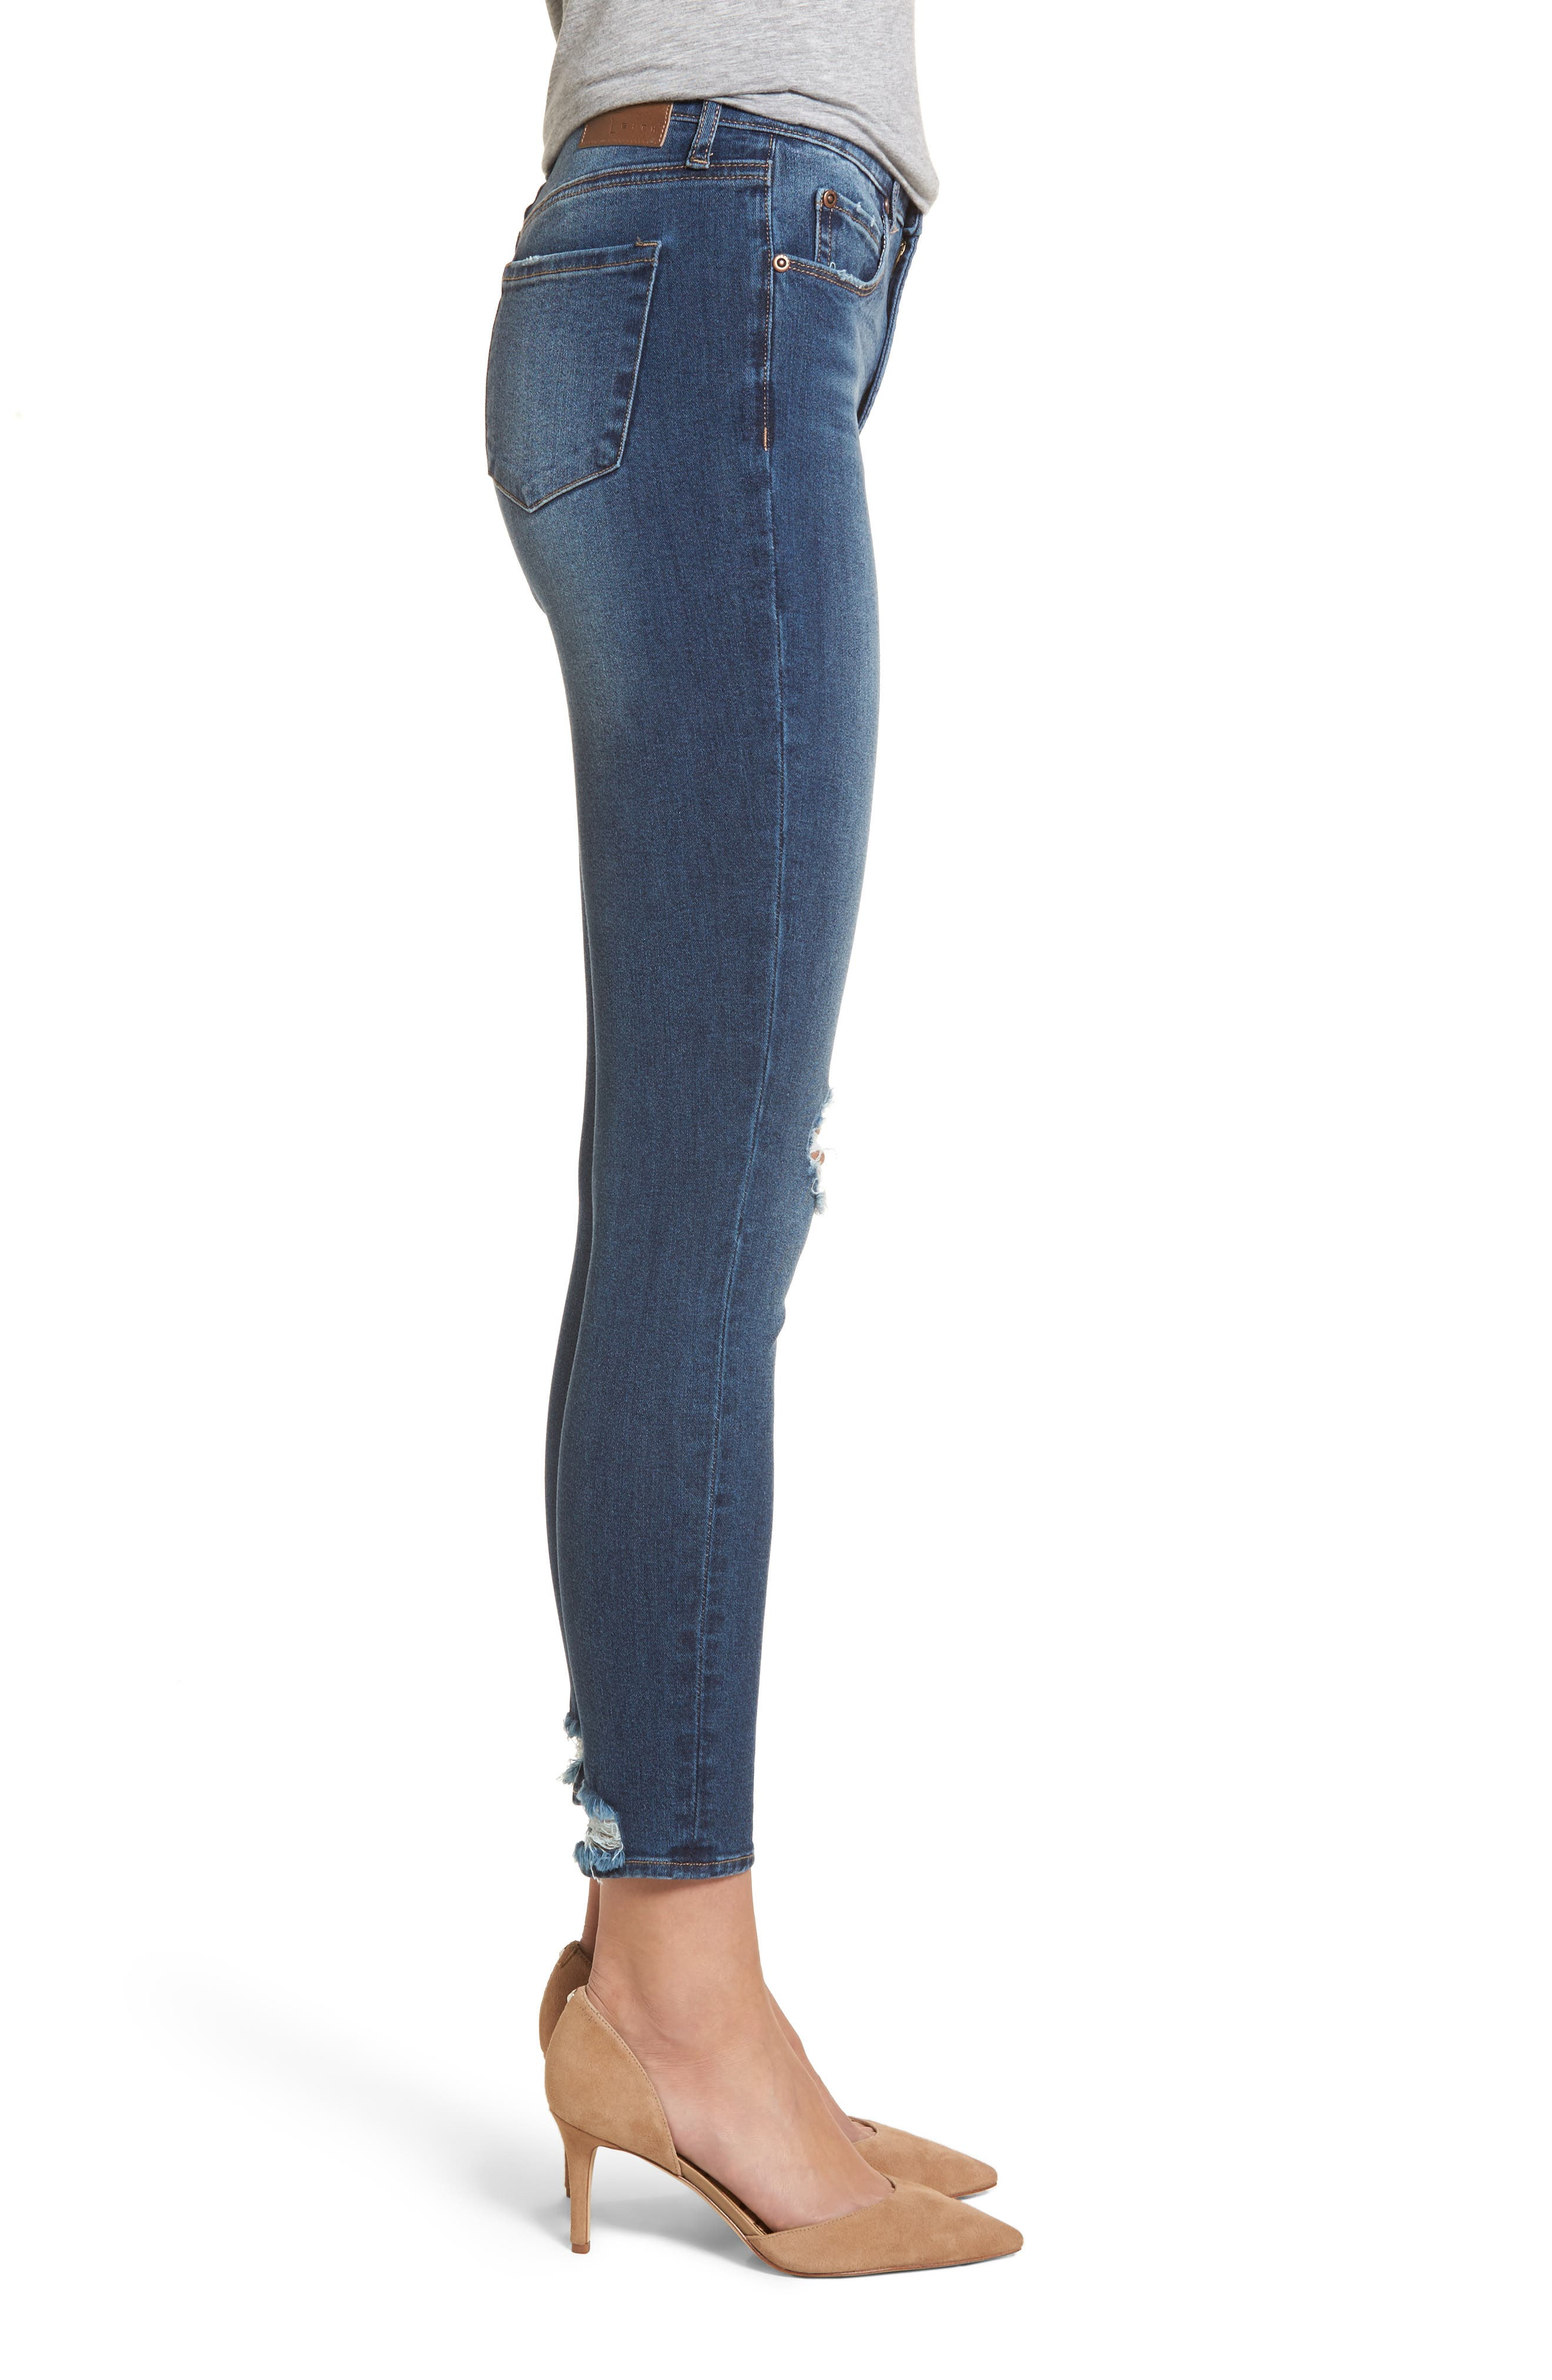 Distressed Skinny Ankle Jeans,                             Alternate thumbnail 3, color,                             Medium Wash